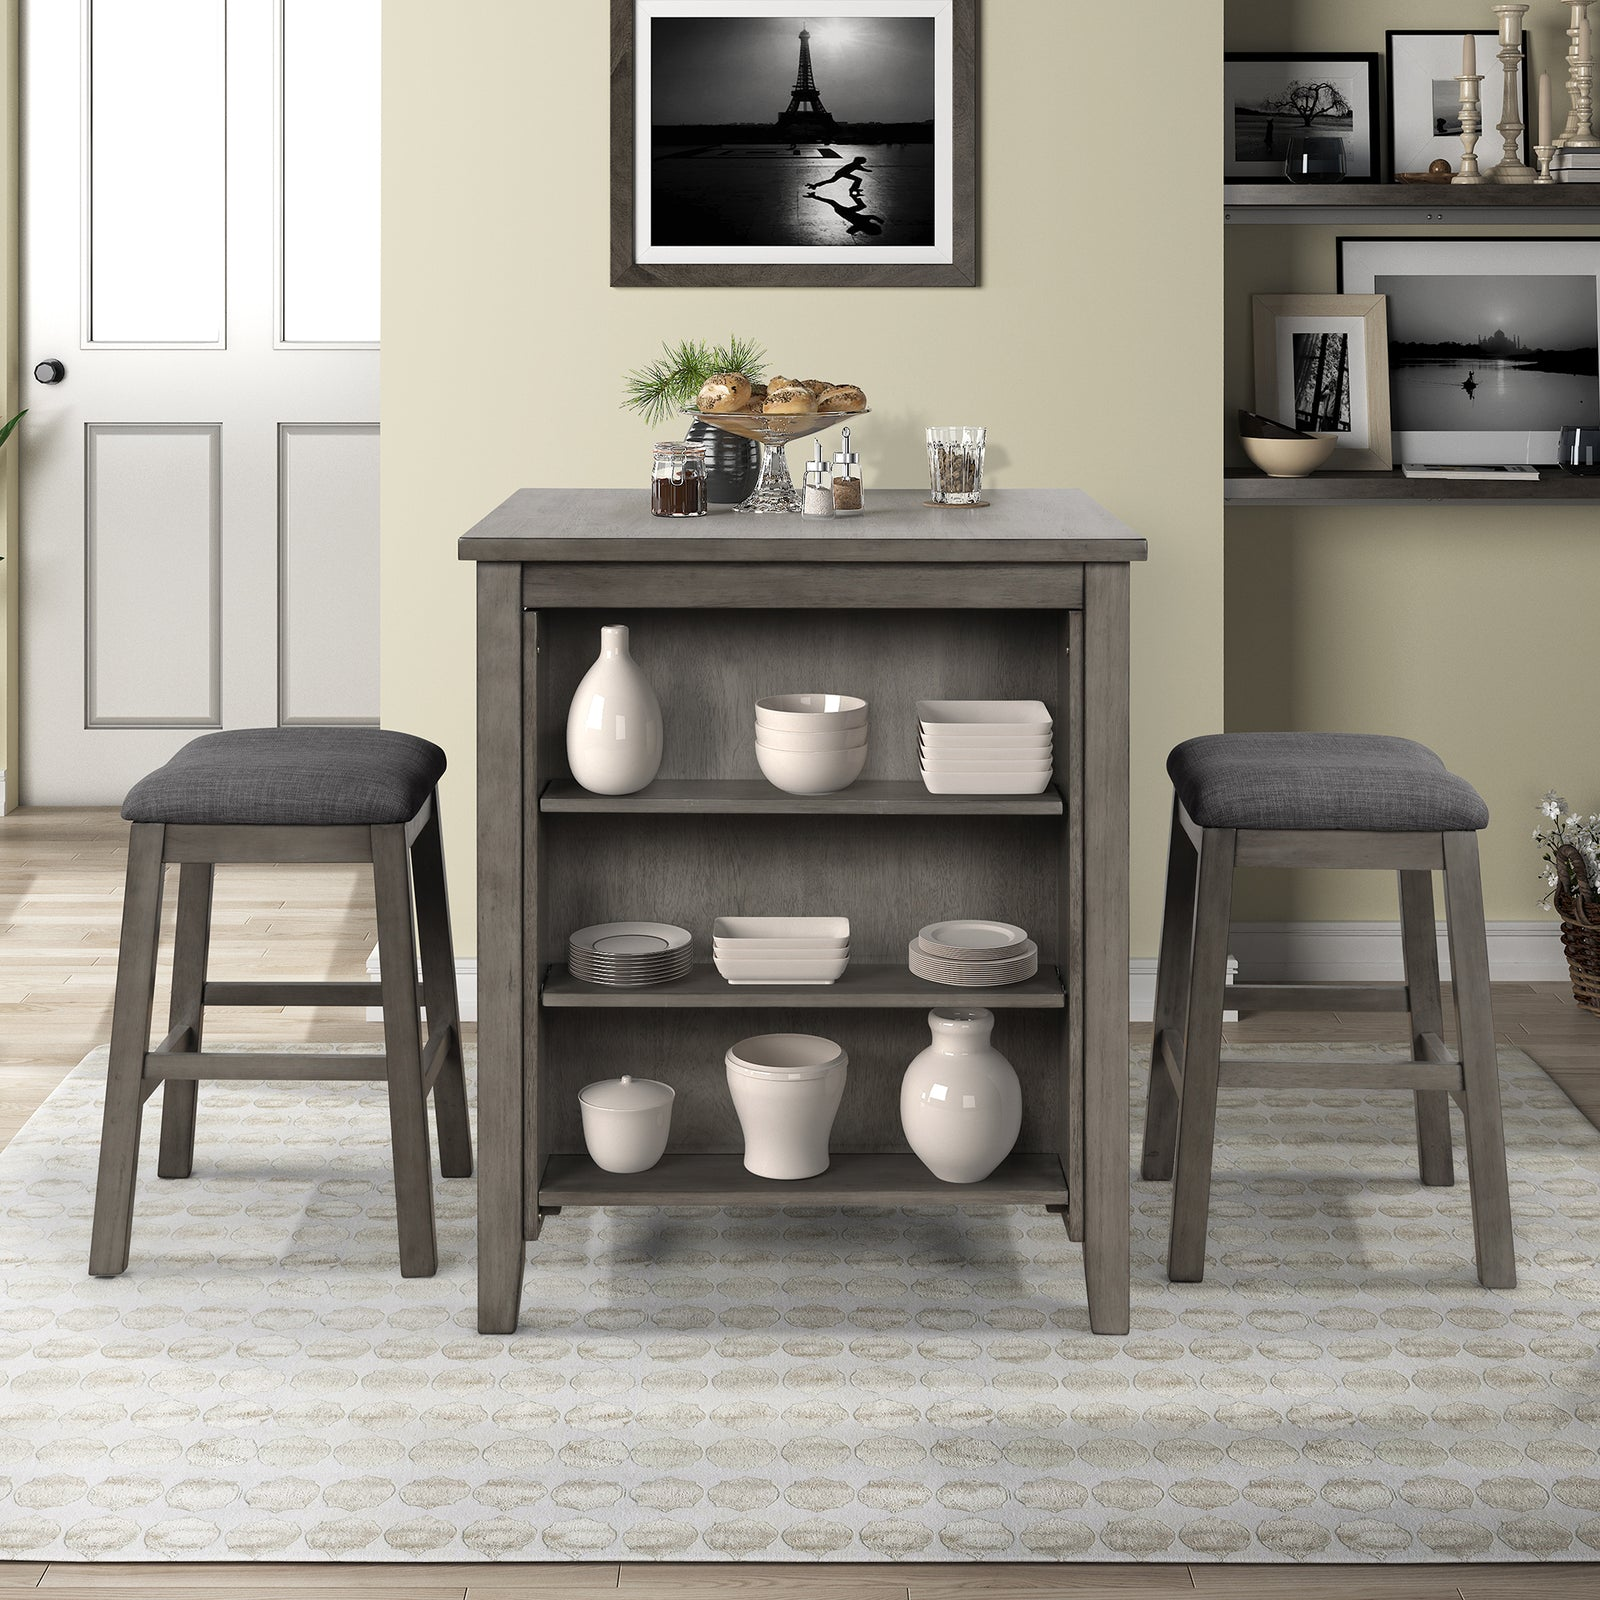 3 Counts - Square Dining Table with Padded Stools, Table Set with Storage Shelf Dark Gray